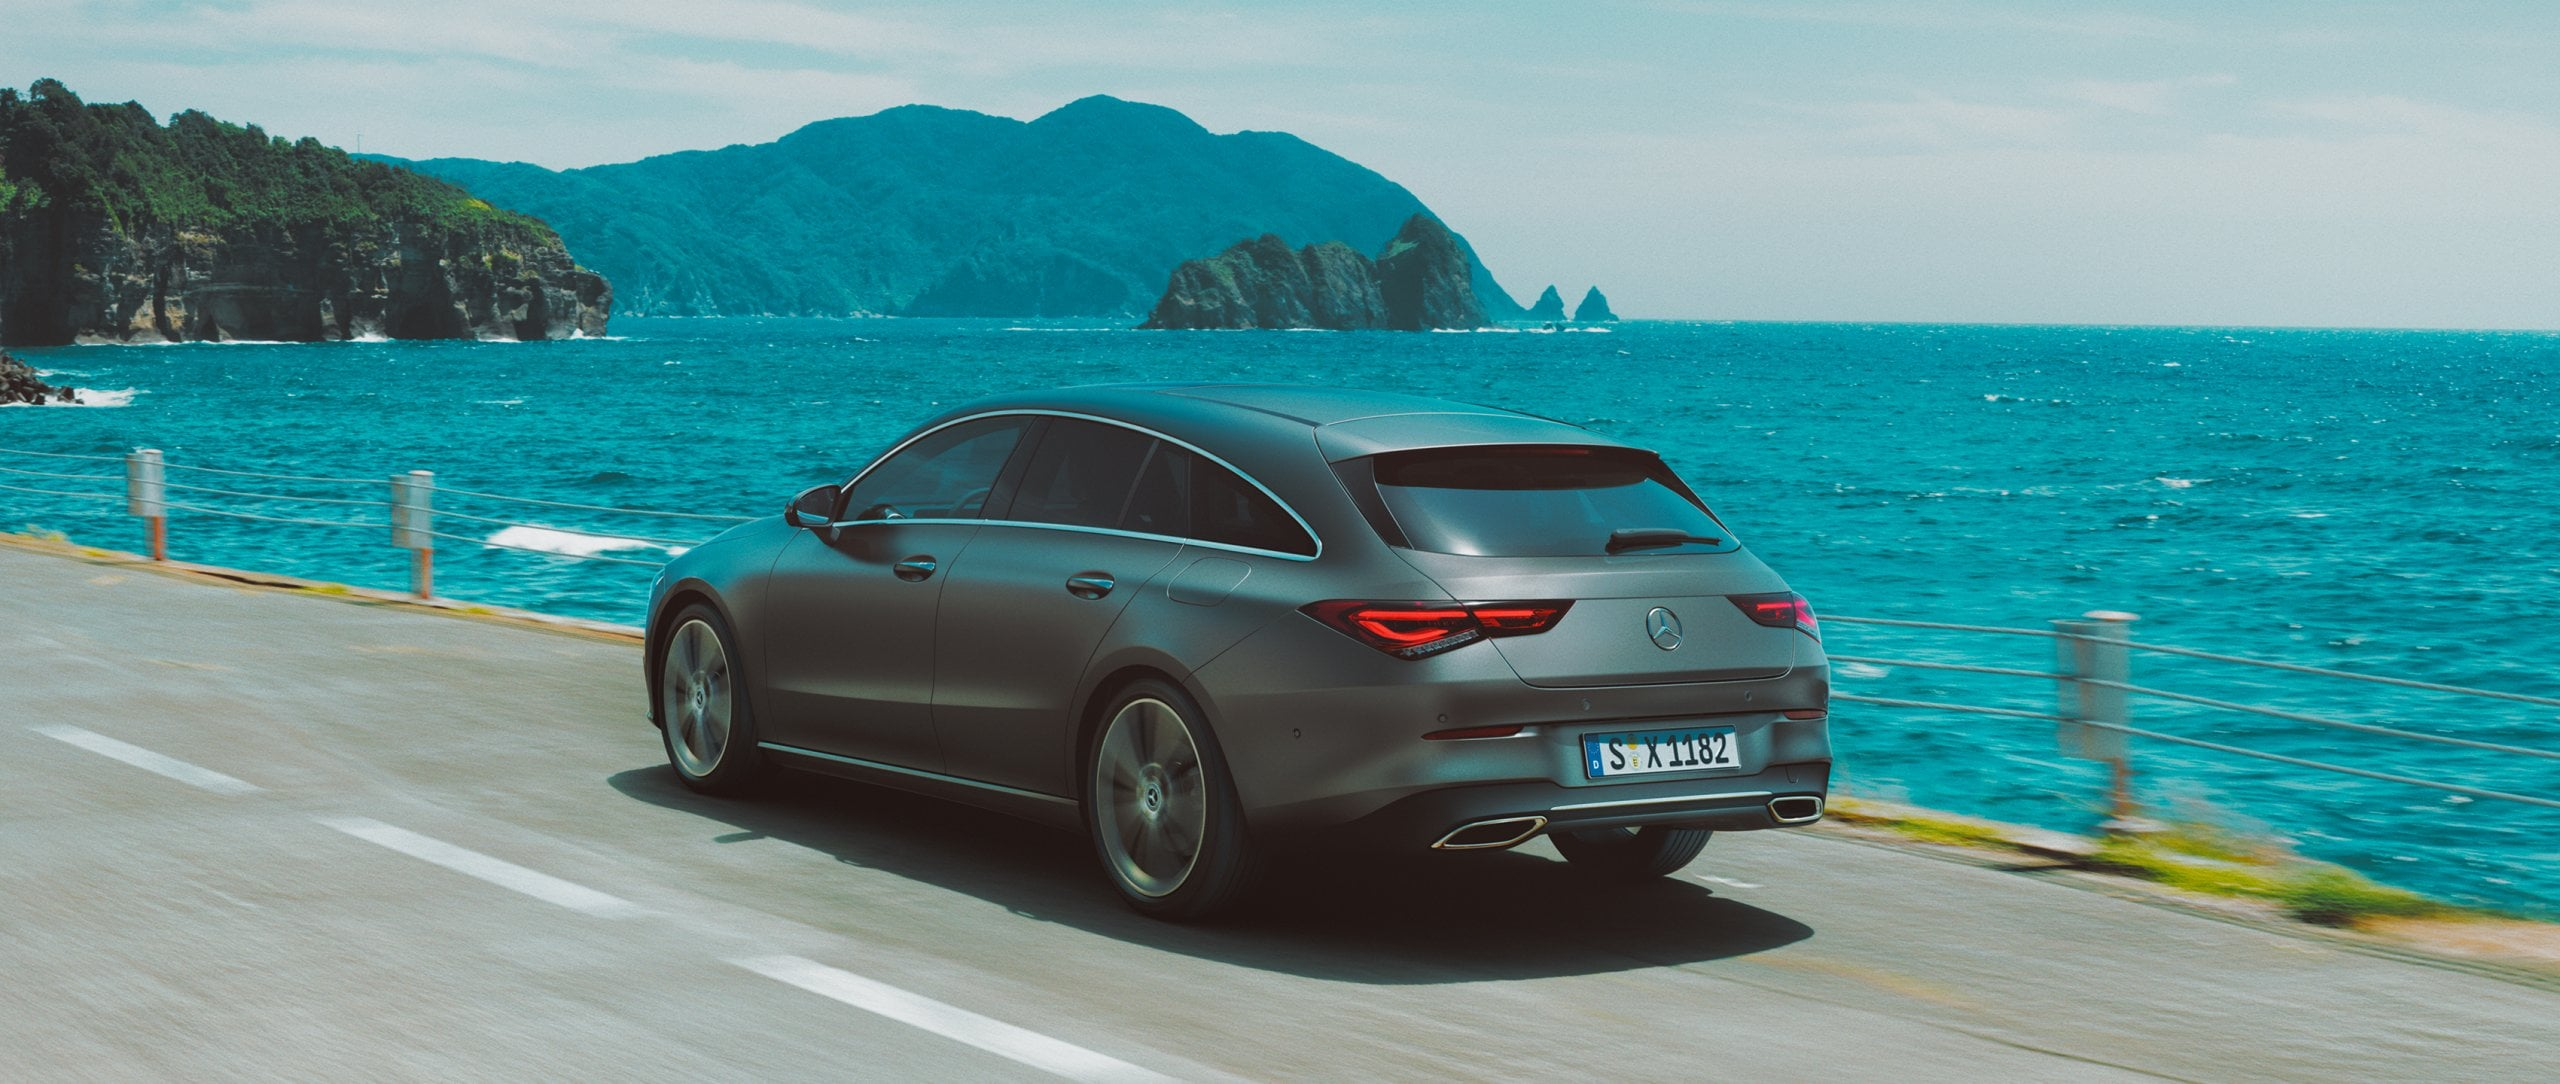 The 2019 Mercedes-Benz CLA Shooting Brake (X 118) in designo Mountain Grey magno on a coastal road.